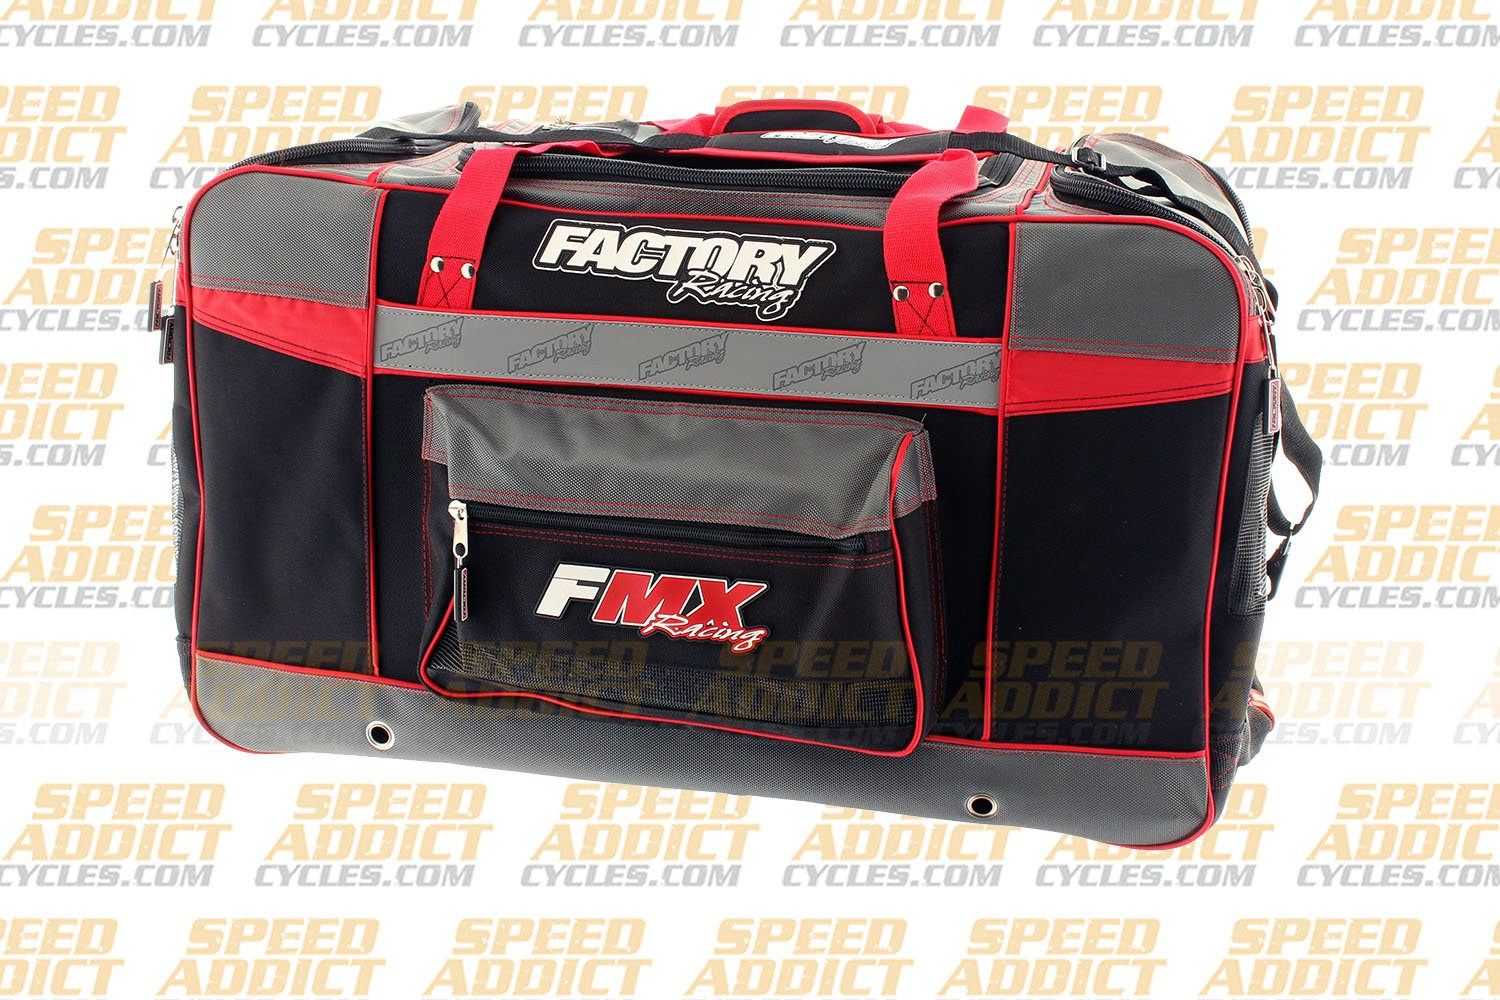 Factory FMX Motorcross Gear Bag XLarge Red by Factory Racing (Image #2)